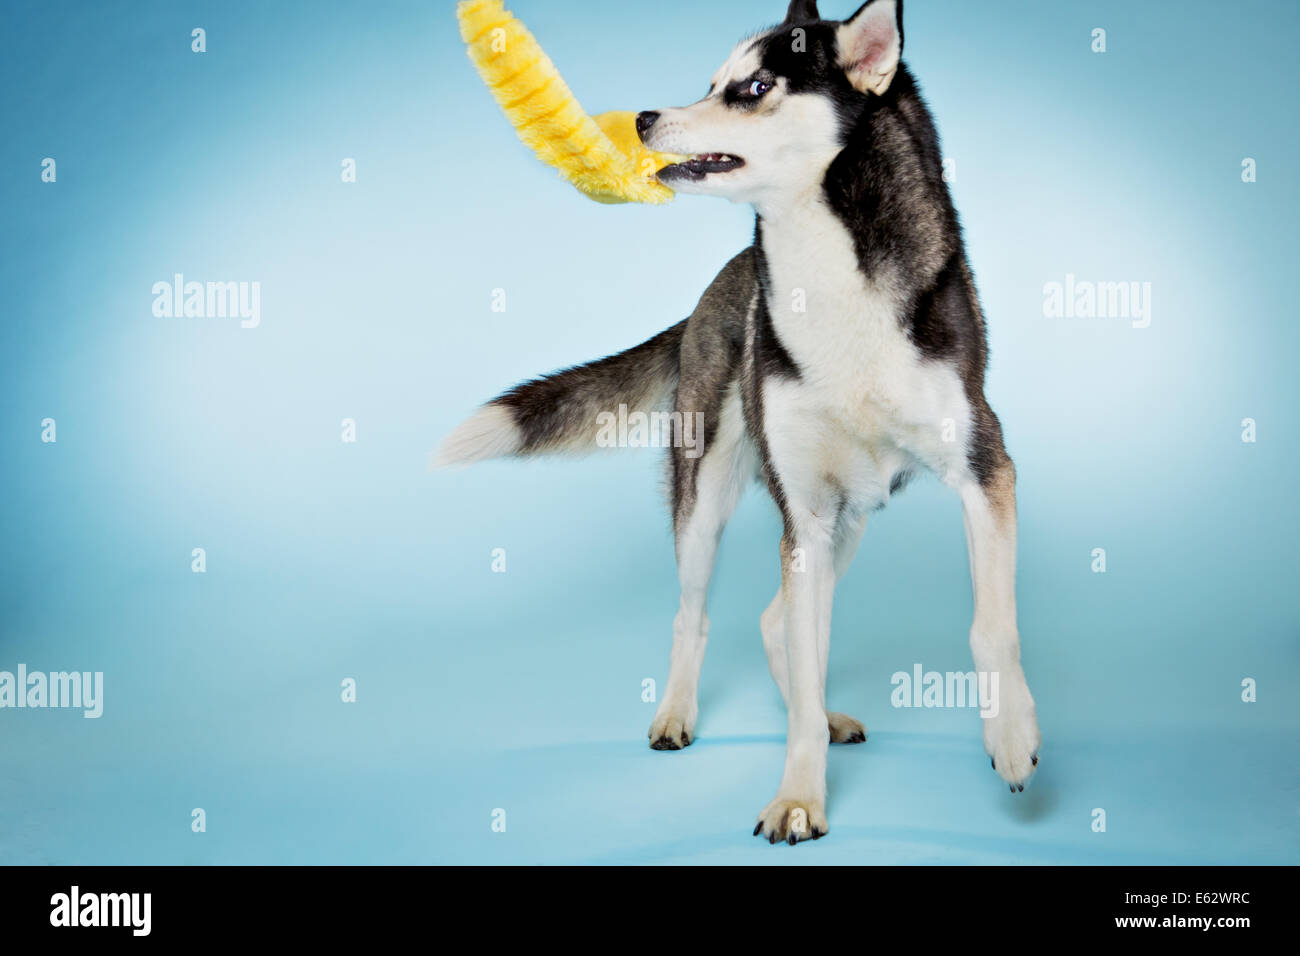 Alaskan husky dog playing with toy in studio - Stock Image